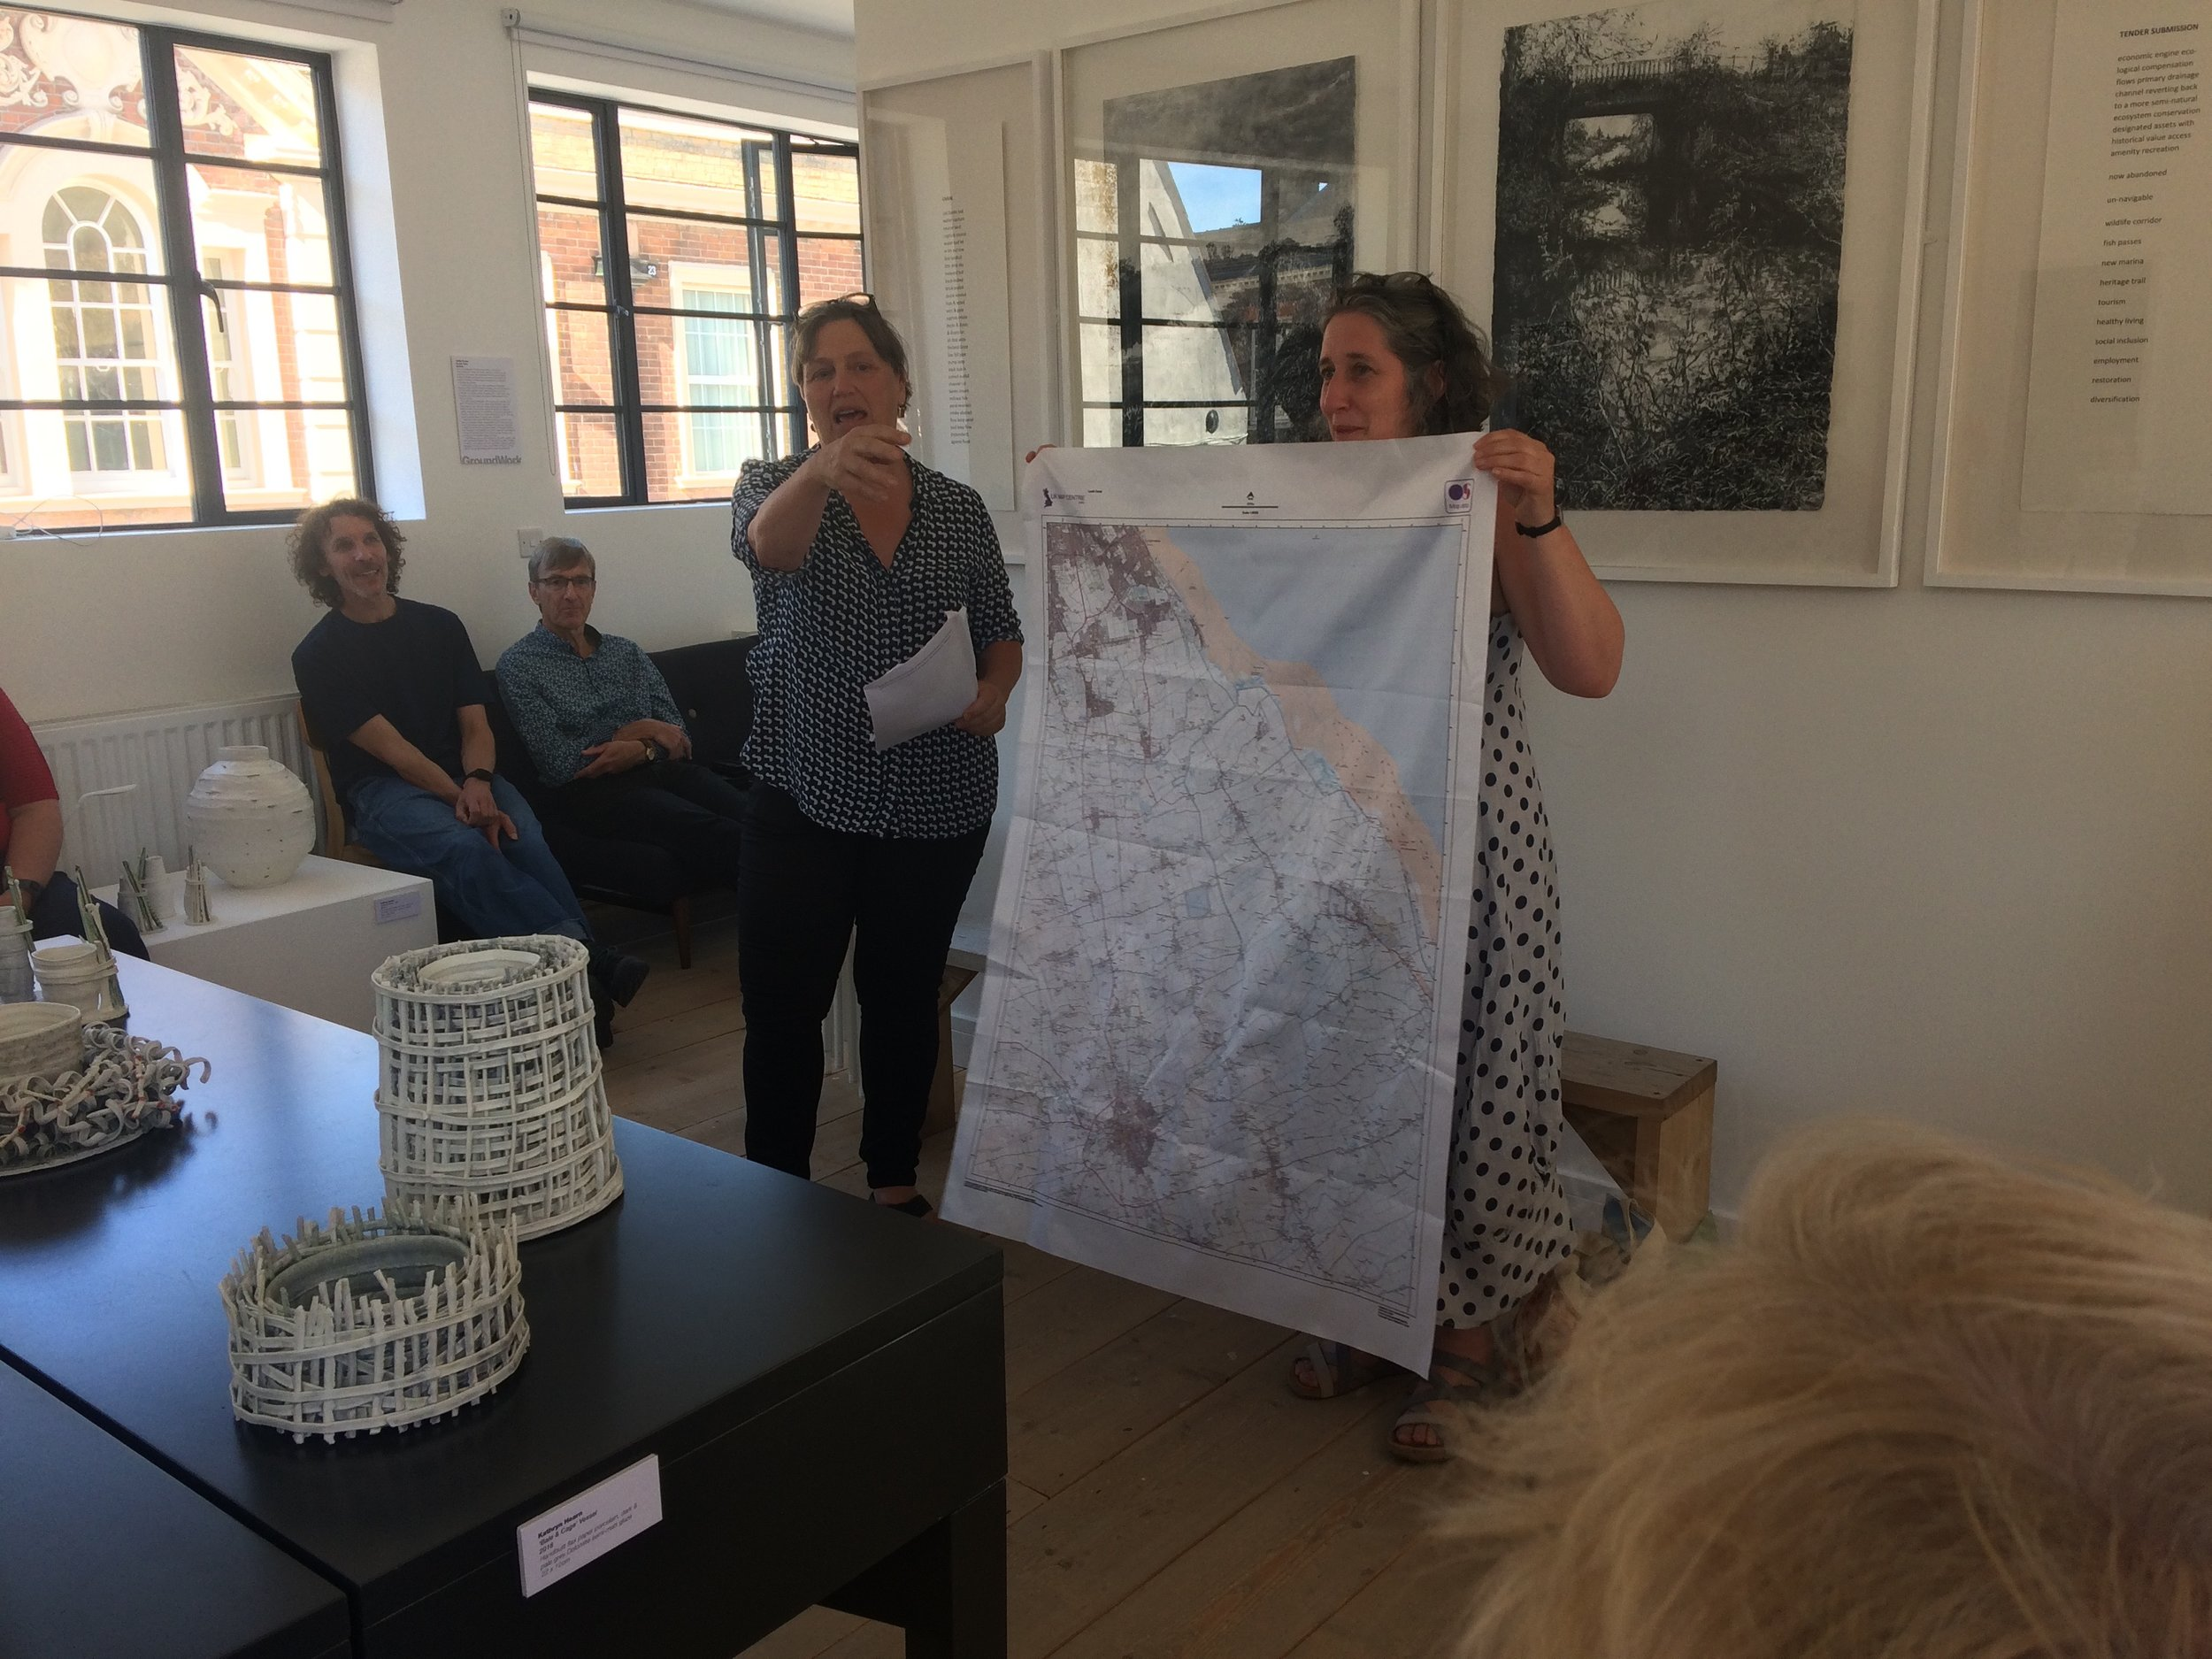 Judith Tucker and Harriet Tarlo talking about their work at GroundWork Gallery on 24th June